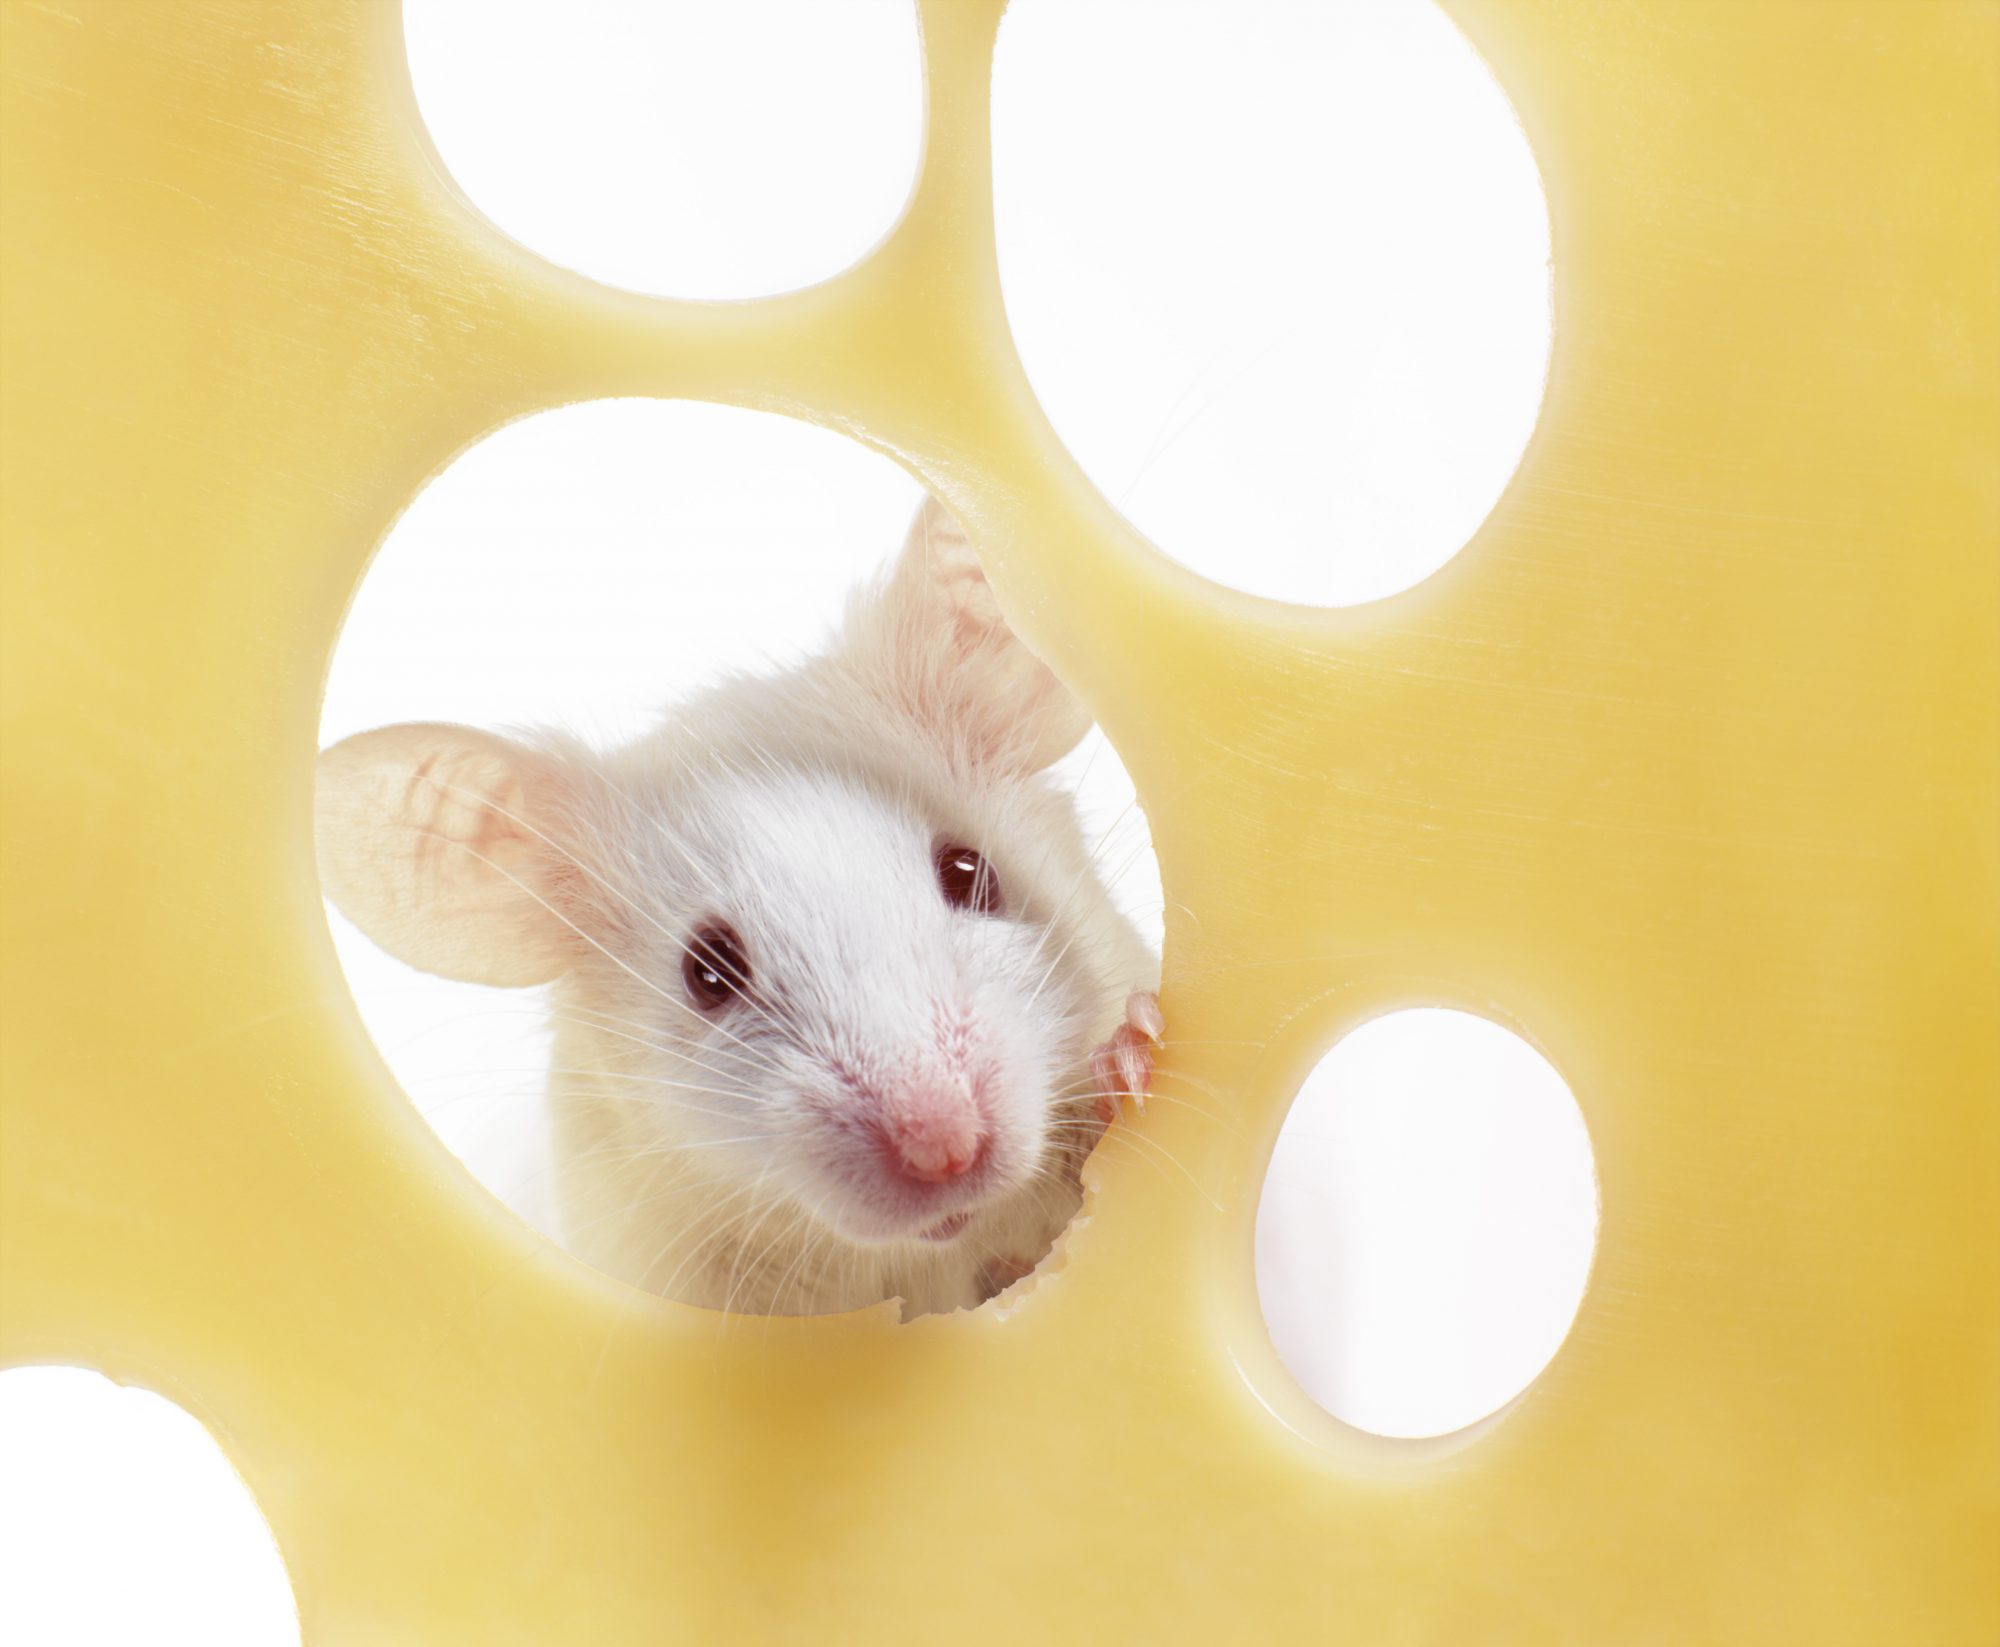 Swiss Cheese Mouse, Getty 7/9/19